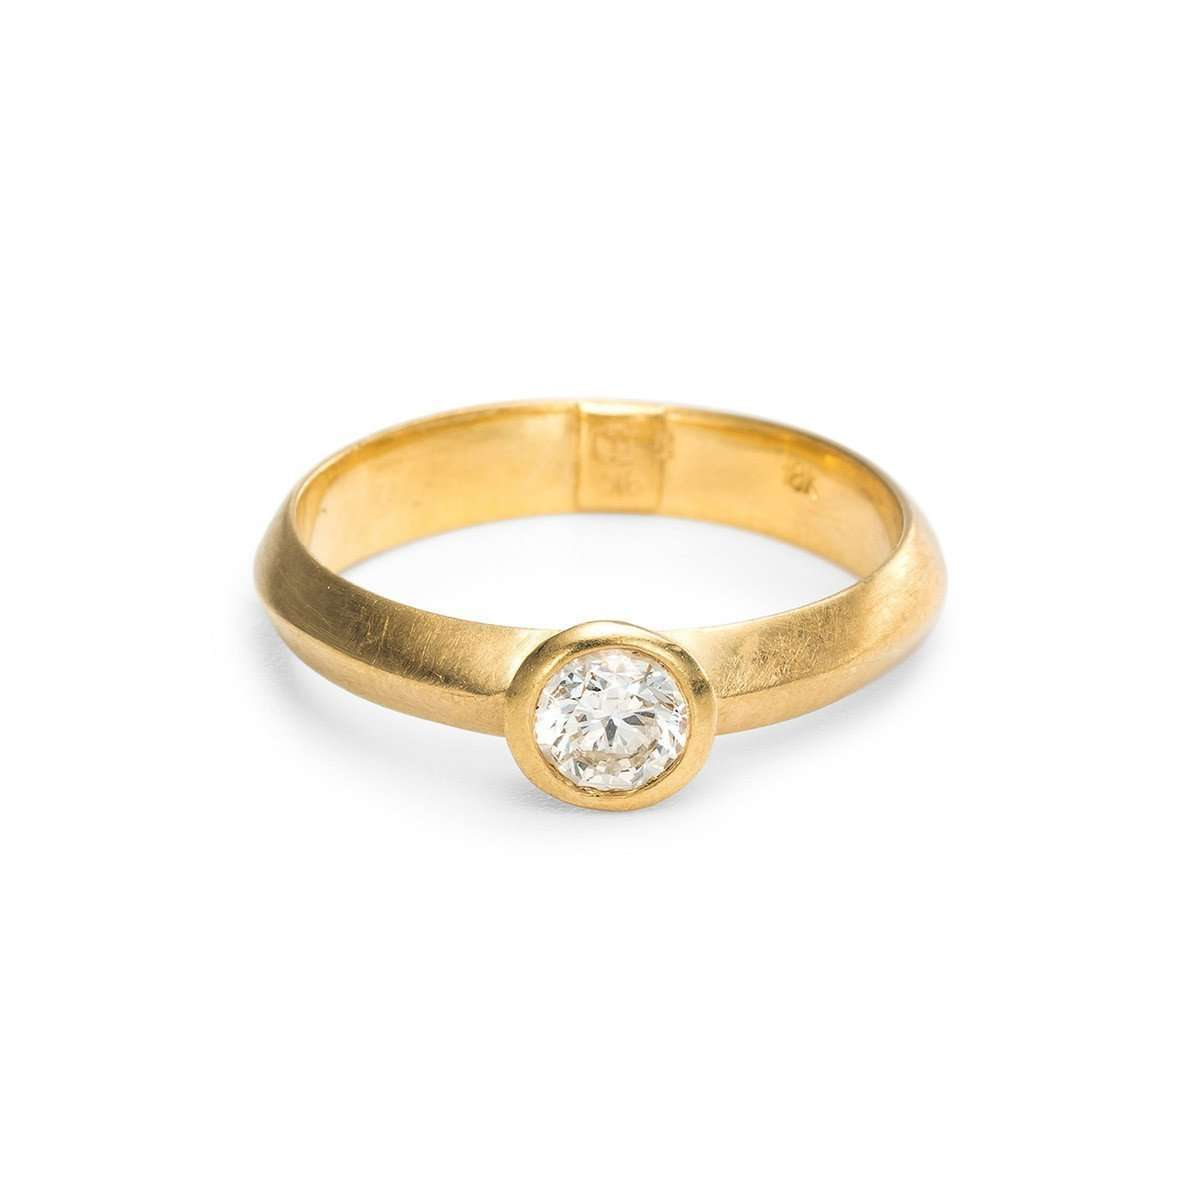 StyleRocks Diamond Eternity Ring 9kt Yellow Gold - UK U - US 10 1/4 - EU 62 3/4 N01fa6C